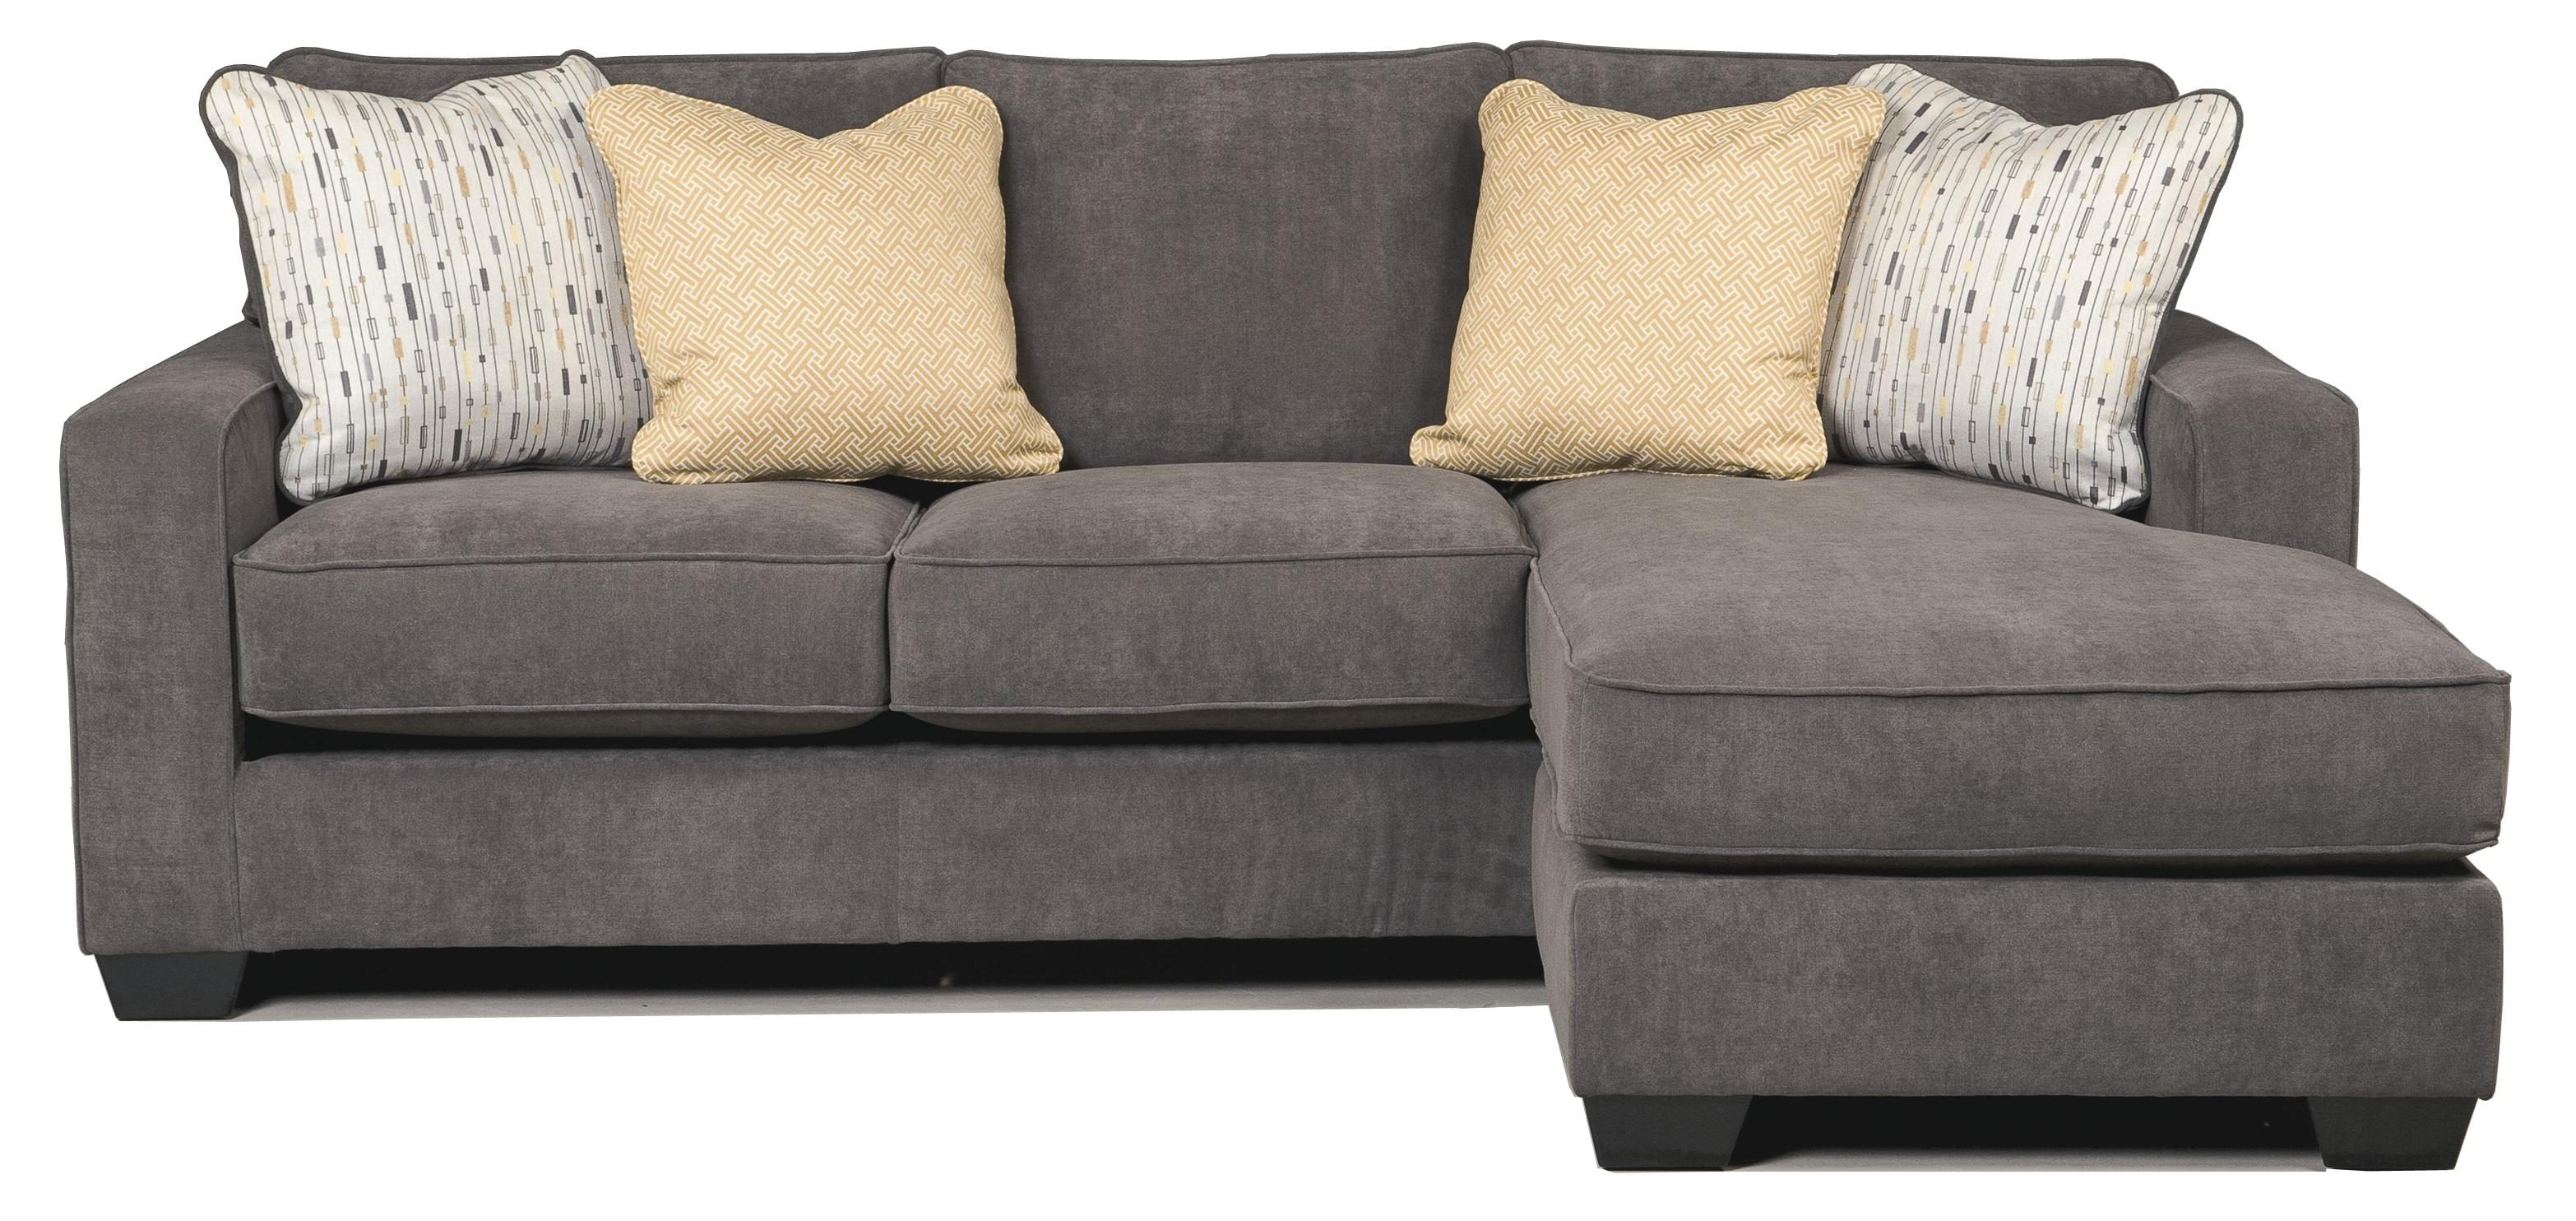 Harper Contemporary Sofa Chaise With Track Arms & Left Or Right Pertaining To Harper Foam 3 Piece Sectionals With Raf Chaise (View 11 of 25)